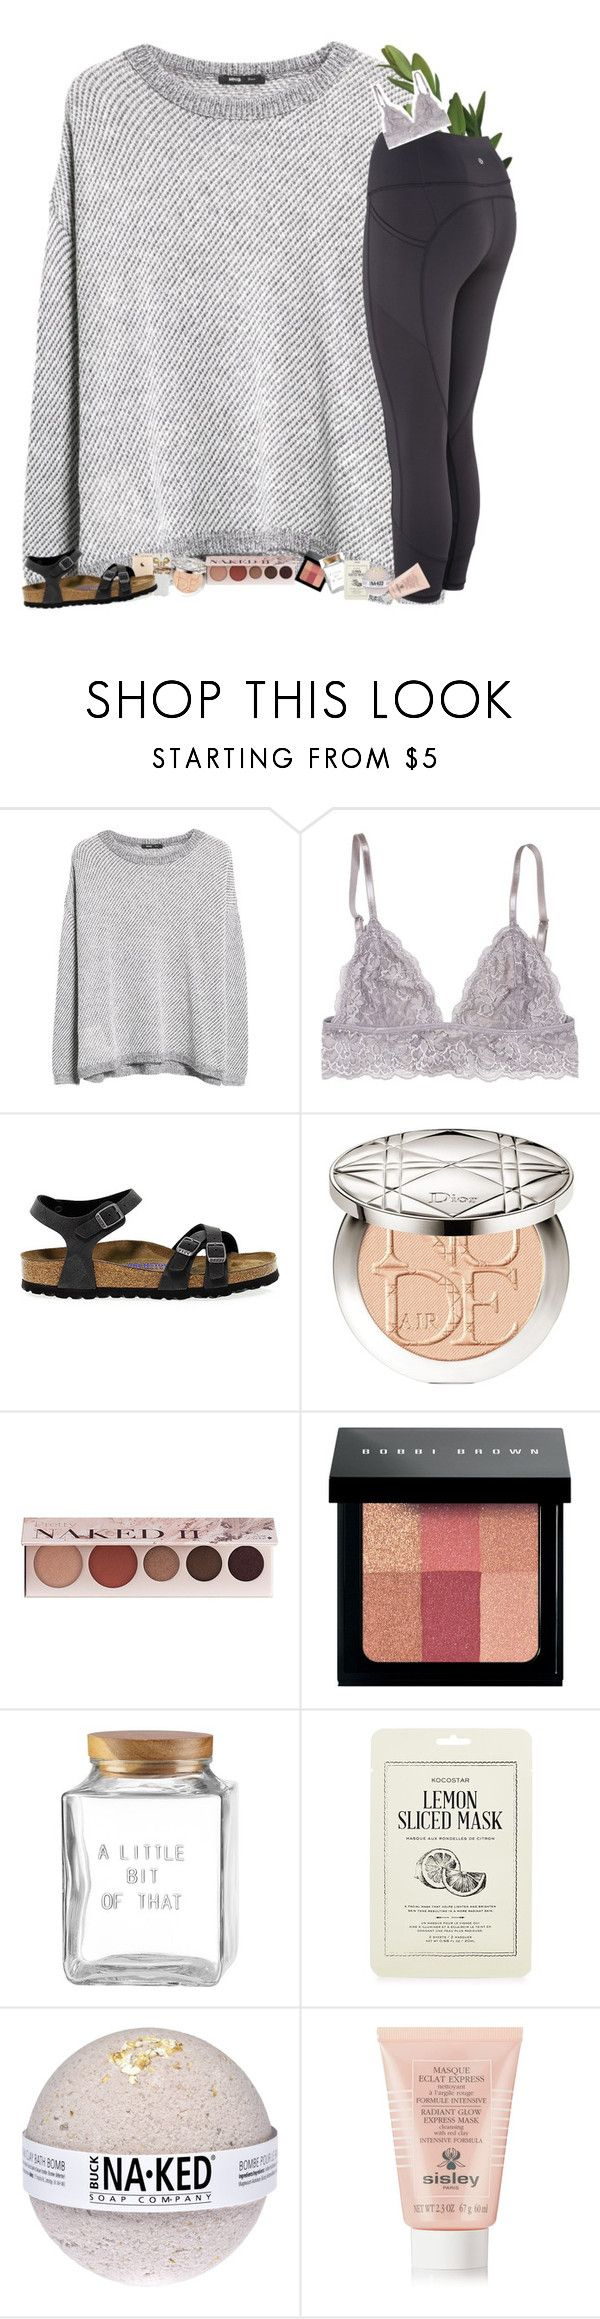 """I'd climb a mountain for you.."" by mac-moses ❤ liked on Polyvore featuring MANGO, Birkenstock, Christian Dior, 100% Pure, Bobbi Brown Cosmetics, Kate Spade, Kocostar and Sisley"